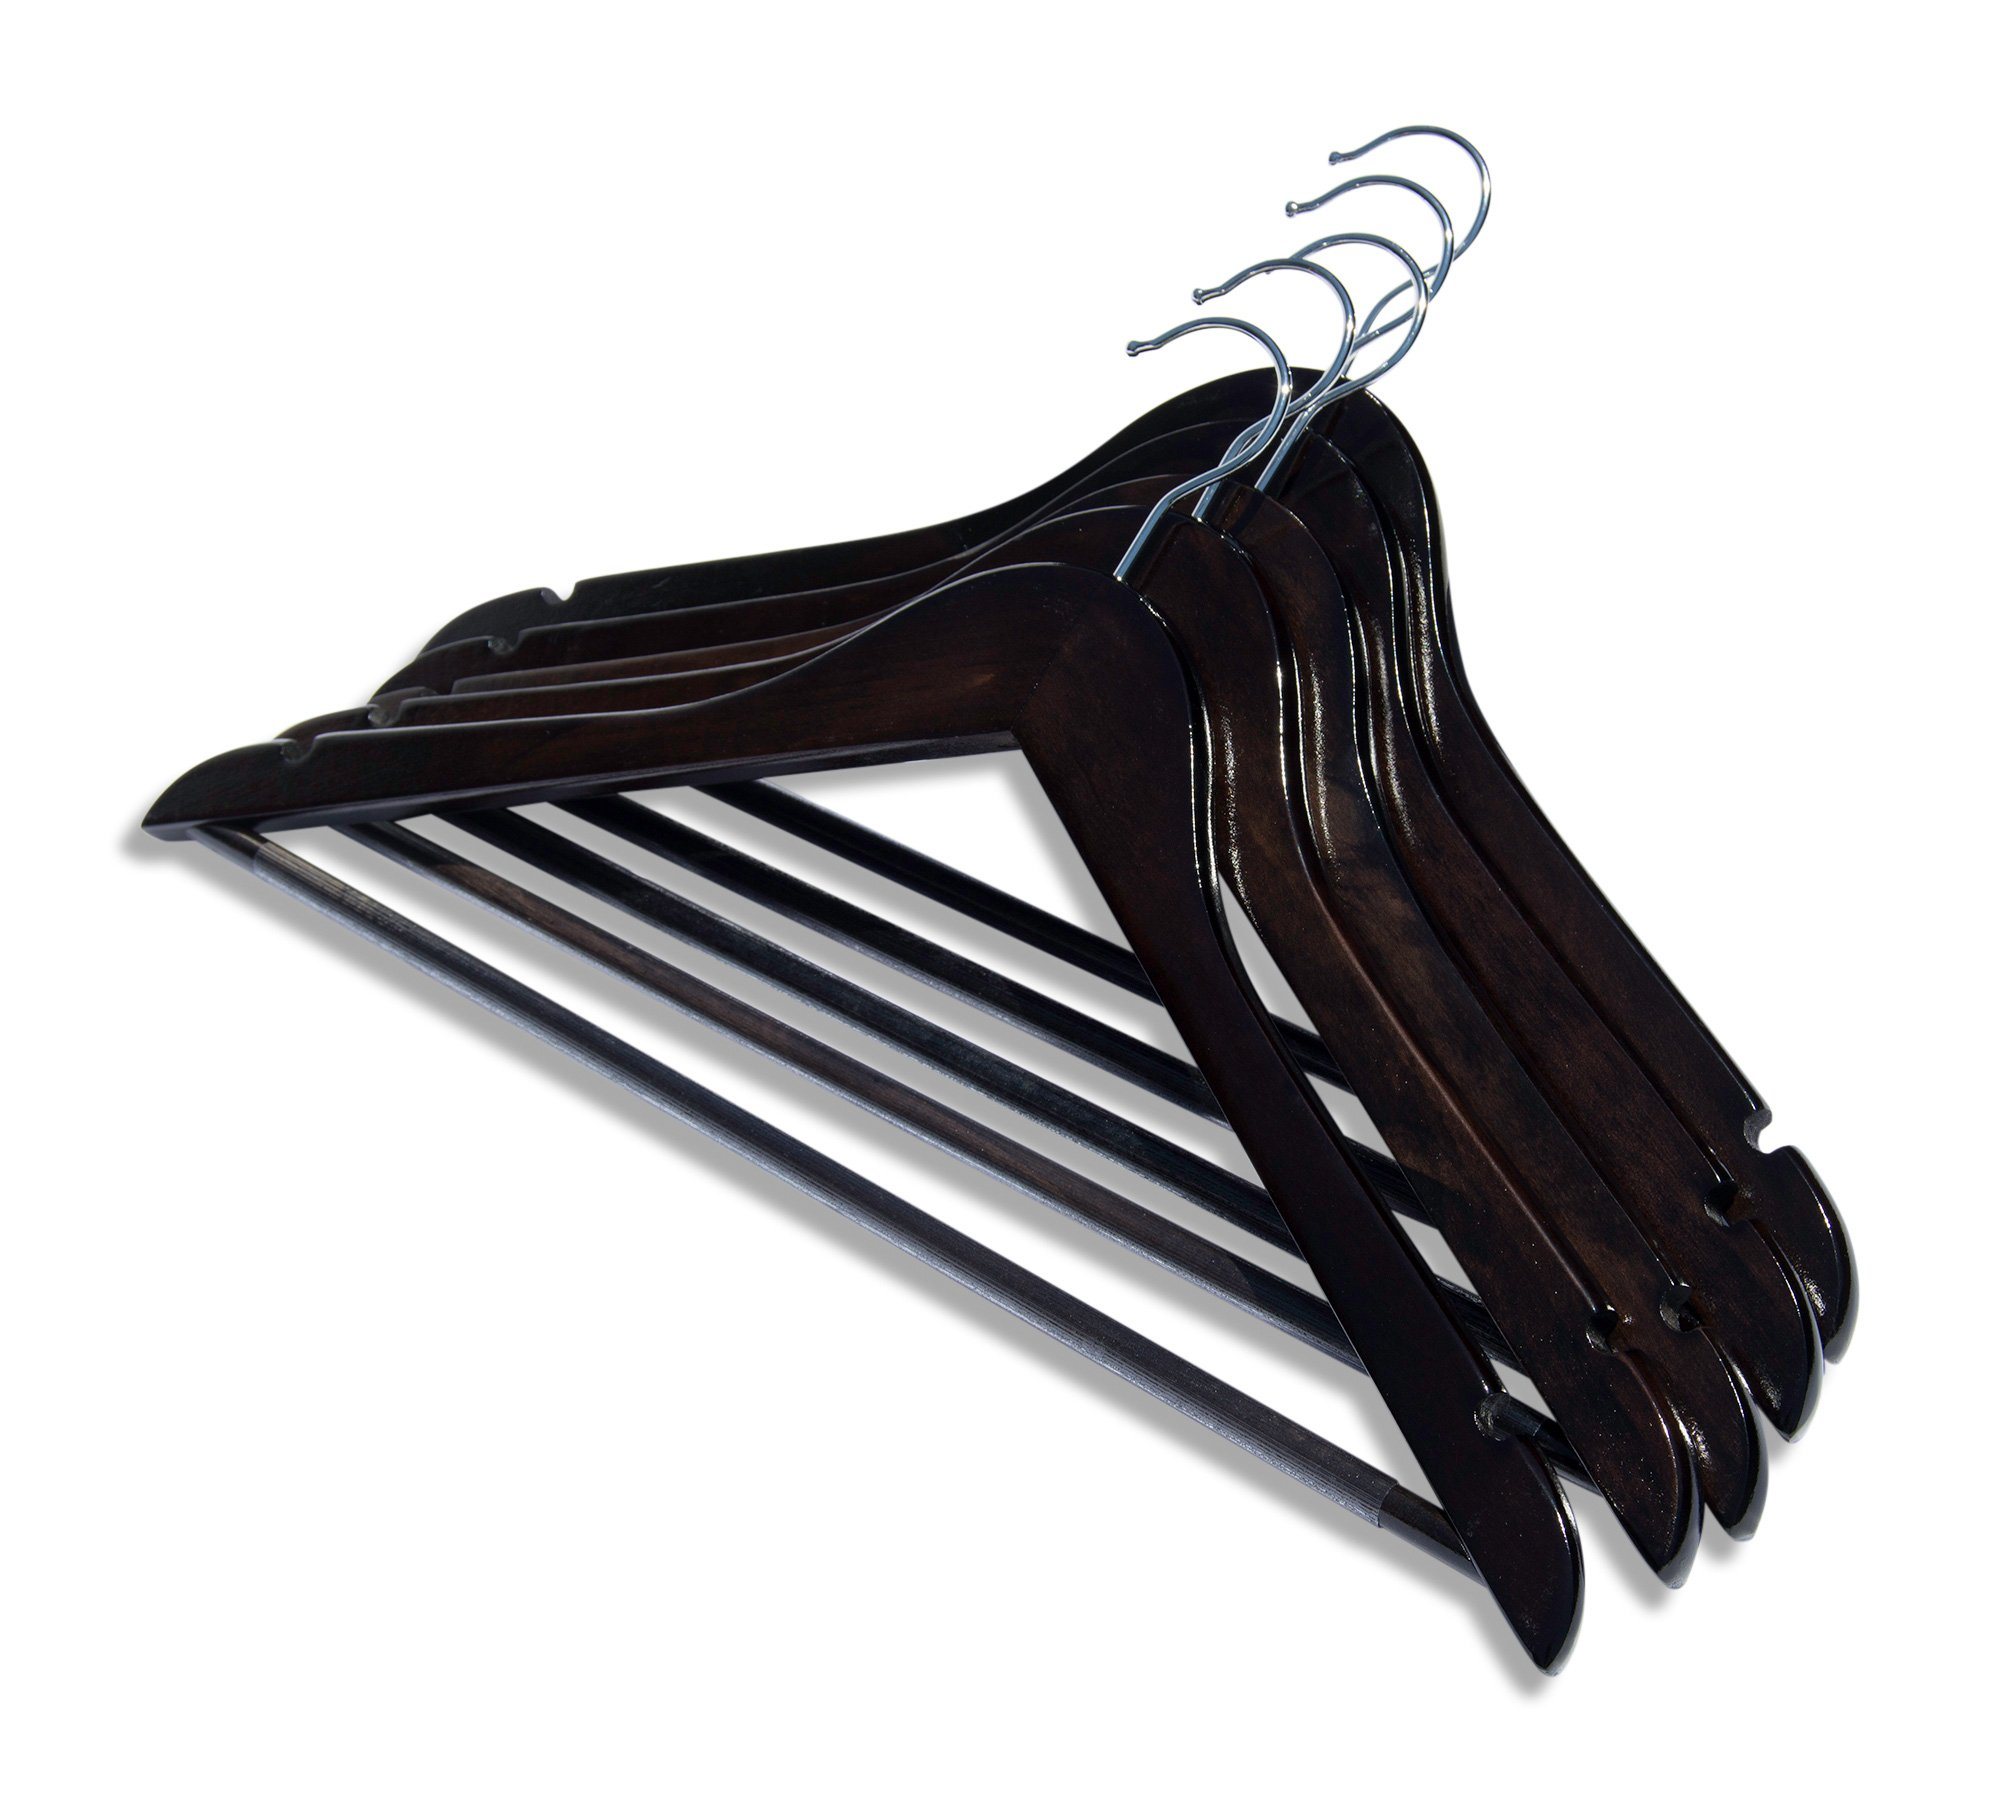 Clutter Mate Wood Clothes Hangers Dark Walnut Wooden Coat Hanger 20-Pack by Clutter Mate (Image #3)